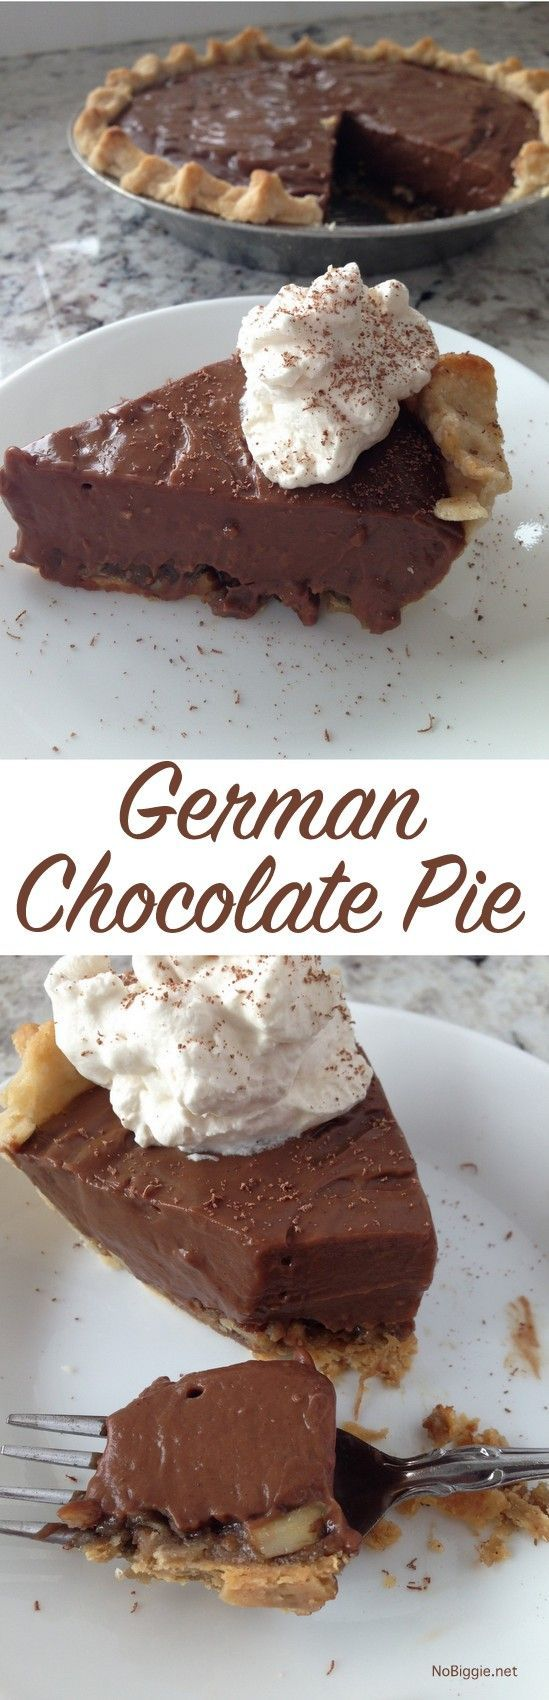 3519 best images about Recipes - Dessert on Pinterest ...